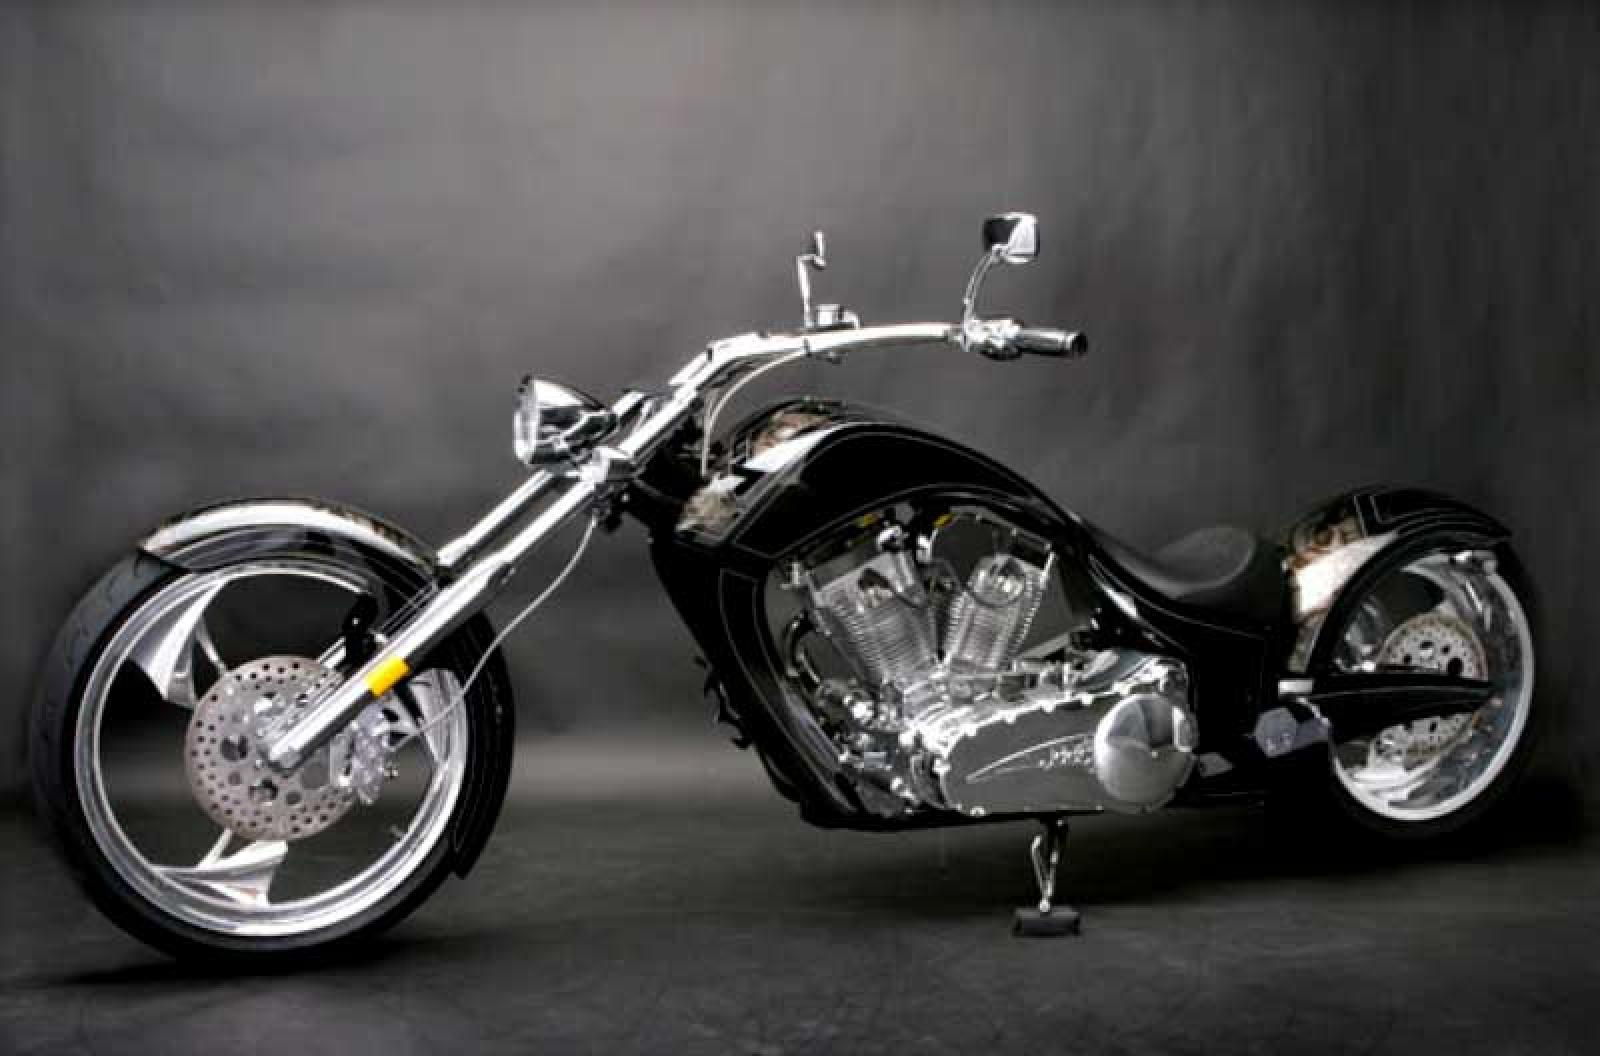 Big Bear Choppers Paradox 100 Smooth Carb images #63695